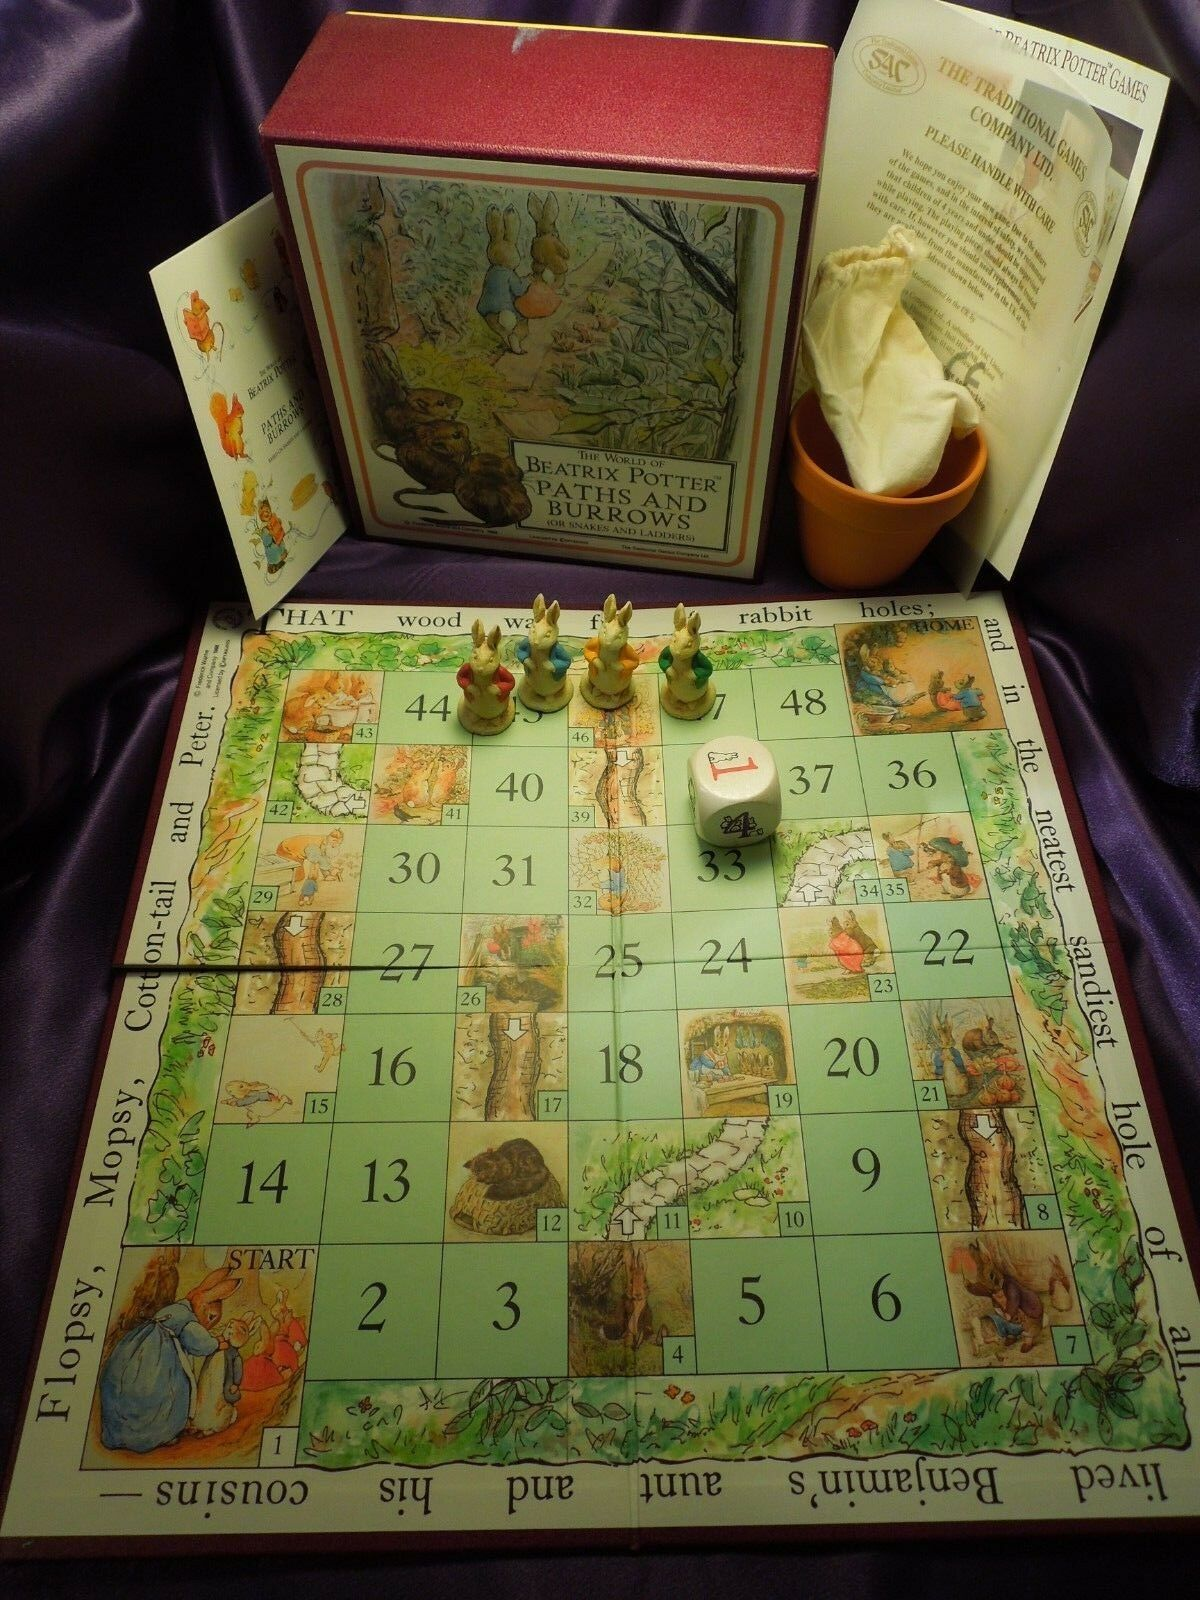 The World of Beatrix Potter Paths and Burrows Board Game Snakes and Ladders 1988